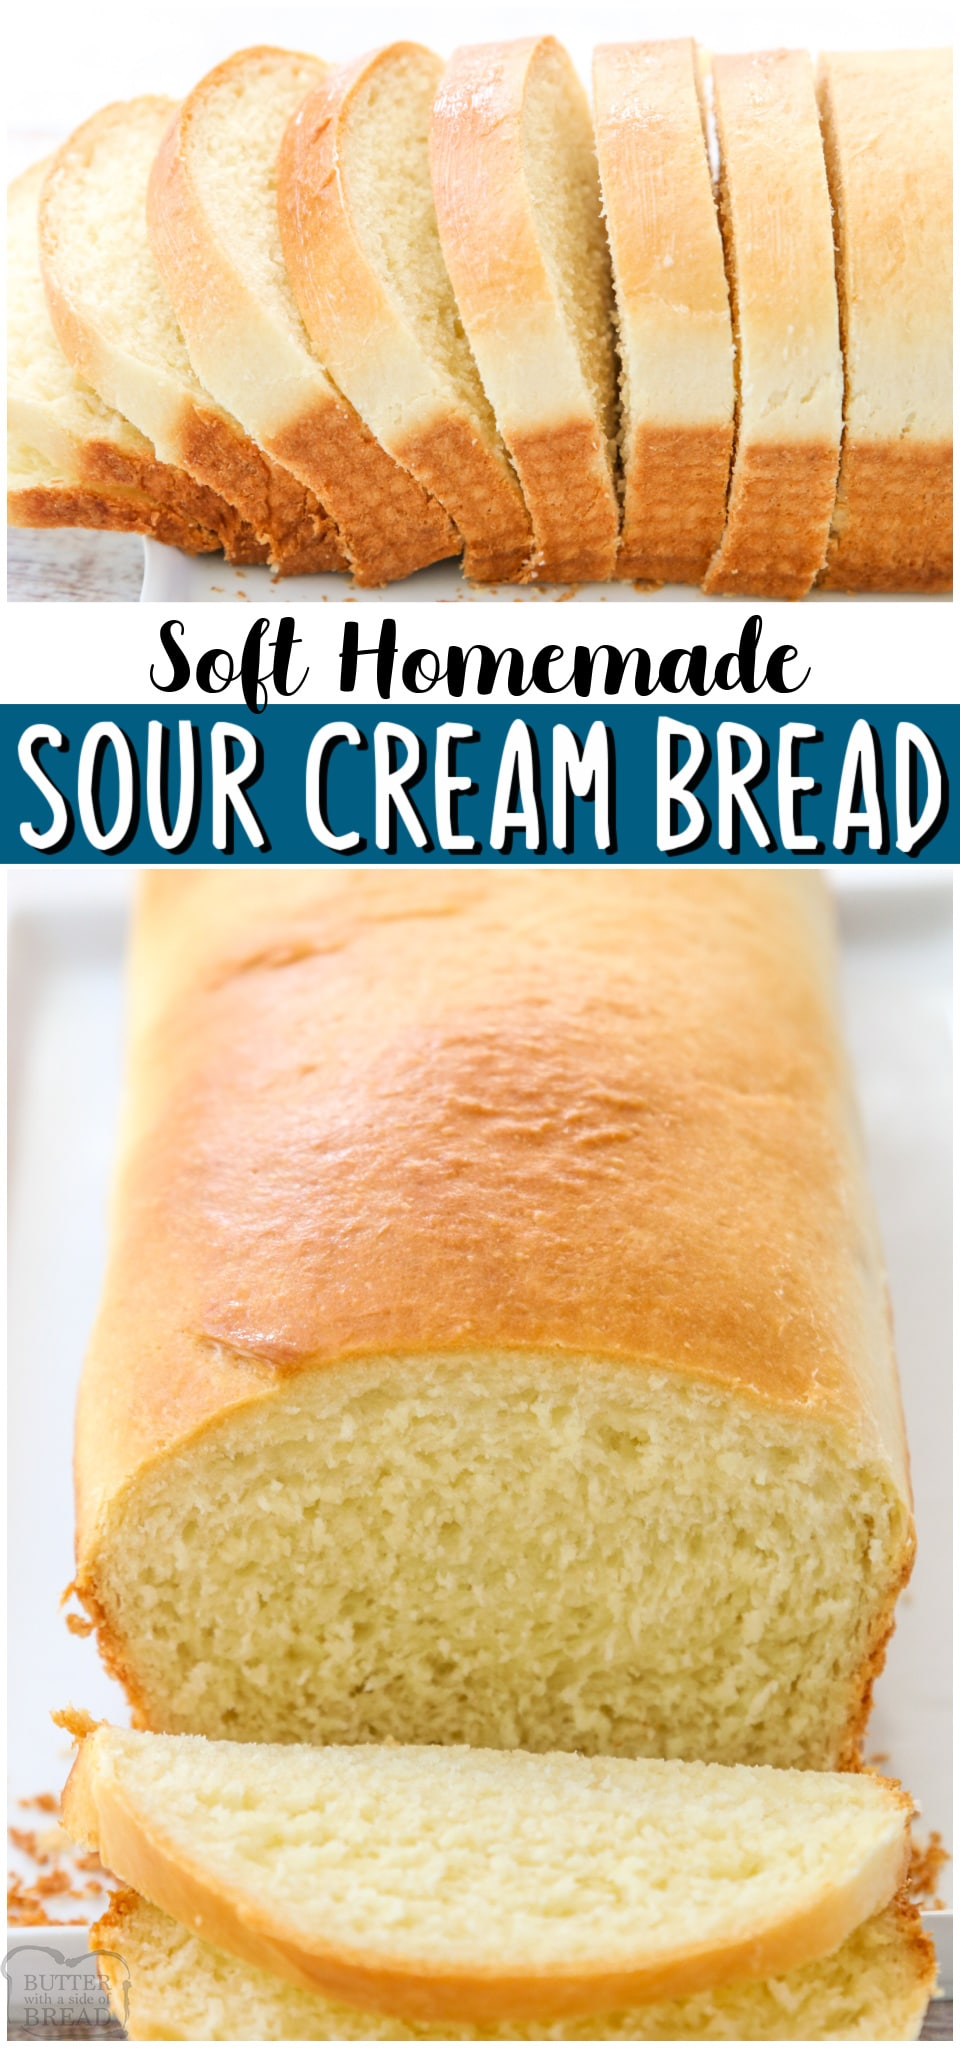 Sour Cream Bread made with flour, yeast, oil and egg, and sour cream of course! Soft, chewy white bread recipe with great flavor and delicious texture, perfect with butter & jam! #bread #homemade #sourcream #baking #whitebread #easyrecipe from BUTTER WITH A SIDE OF BREAD